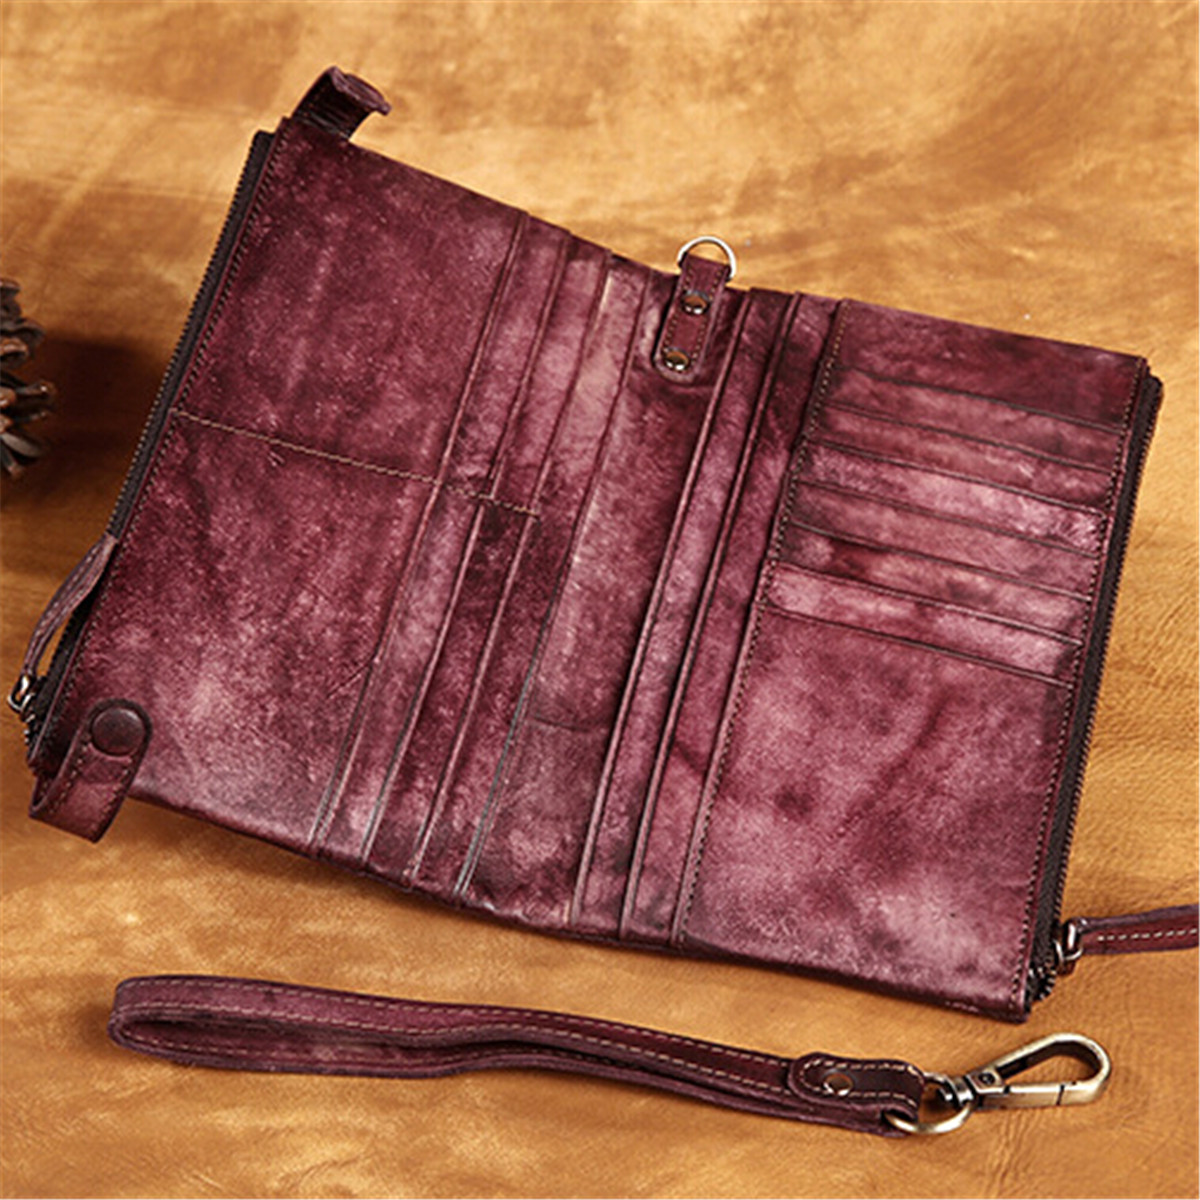 Women Genuine Leather Wallet Case Phone Bag Vintage Clutch Wallet Card Case for under 6 inches Phone